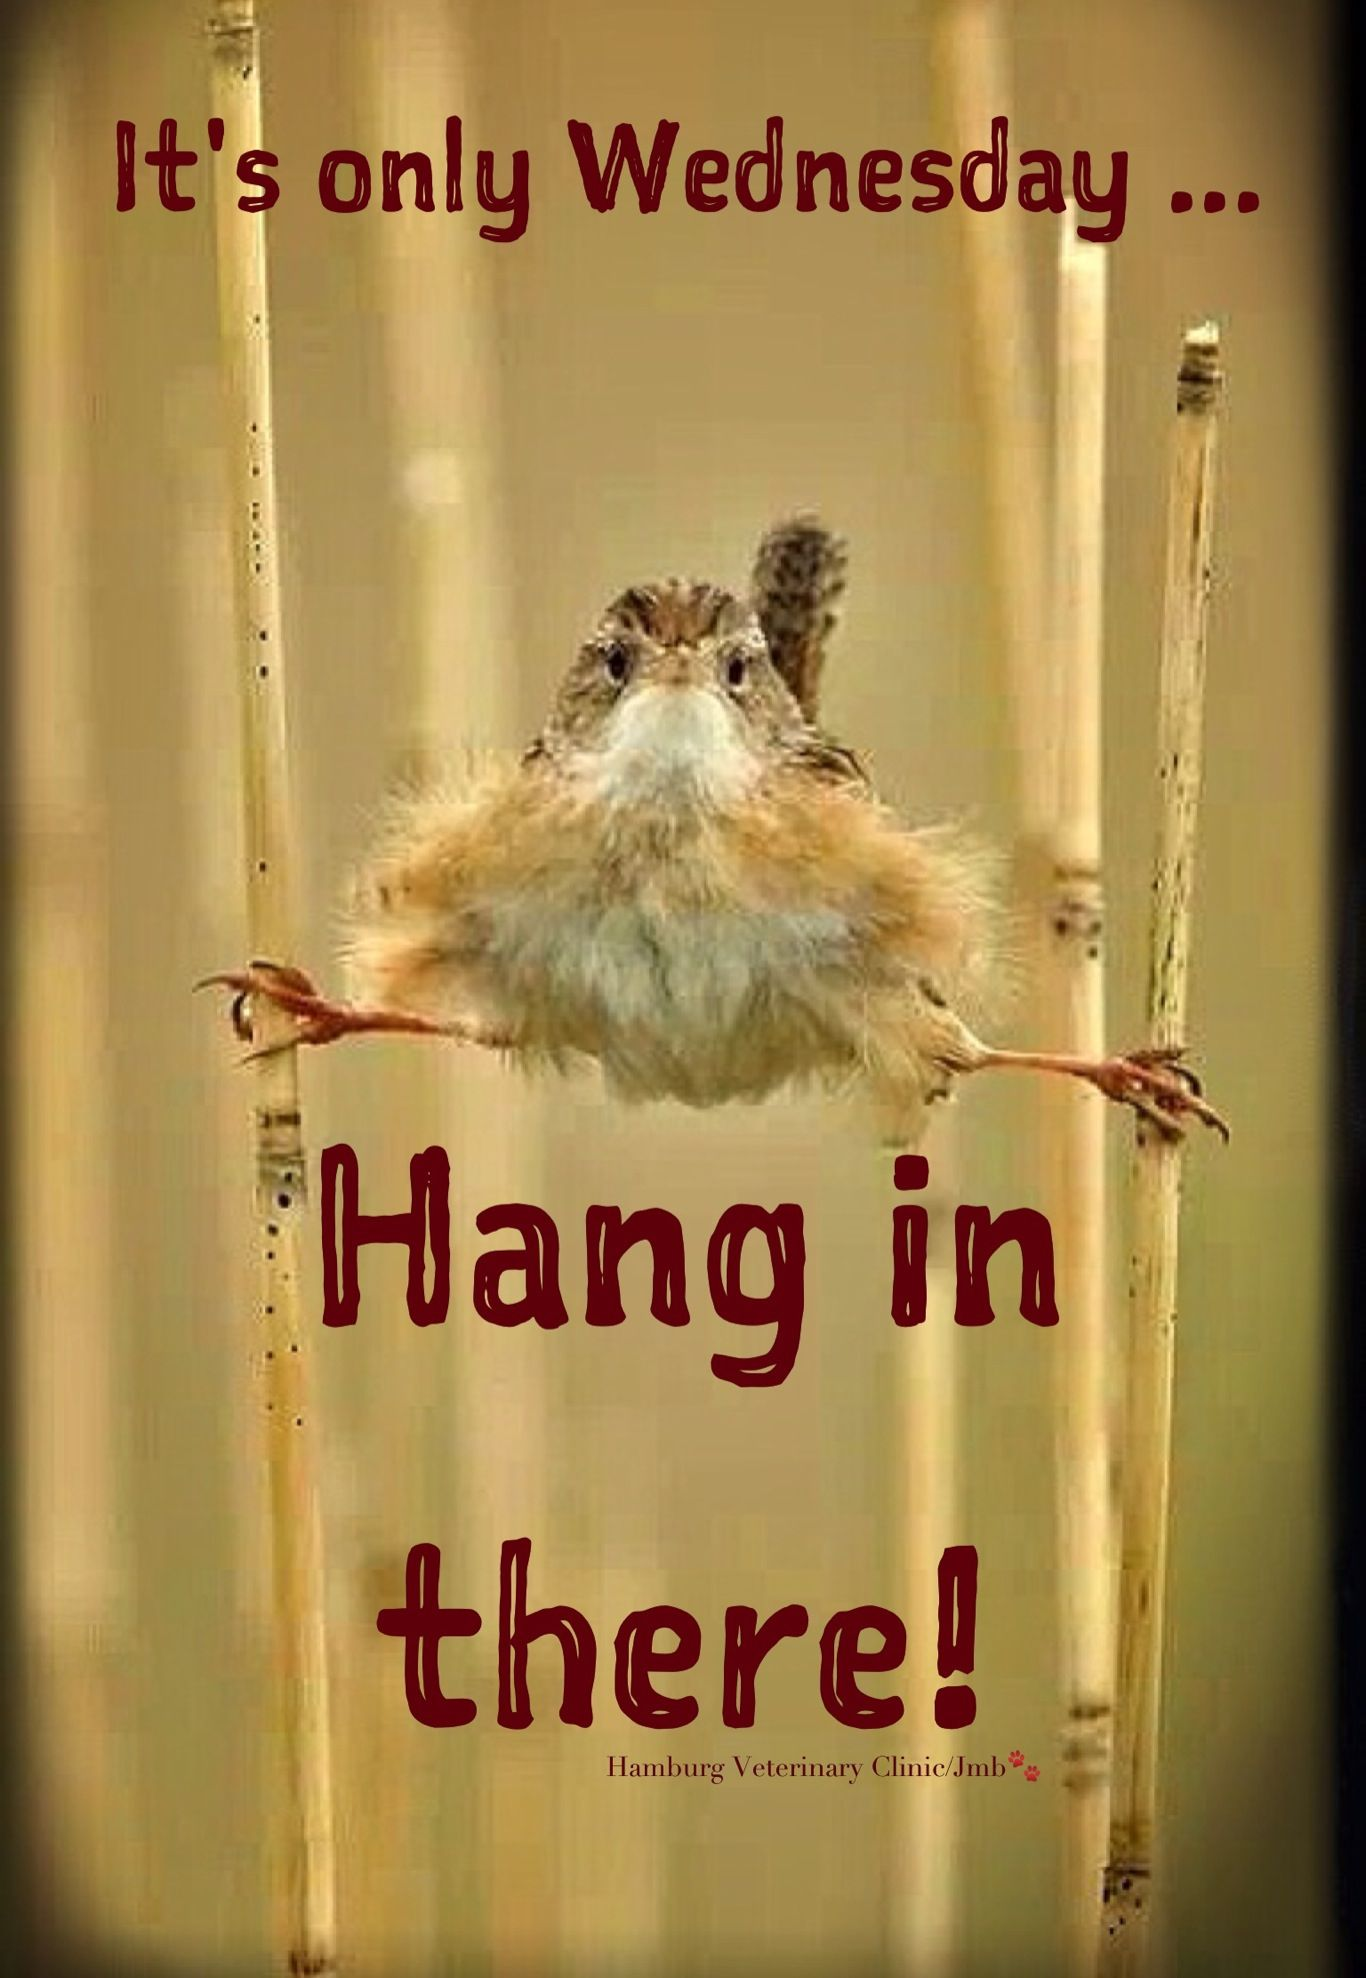 Wednesday Quotes Inspirational Humor: Animal Funny: Happy Wednesday! Hang In